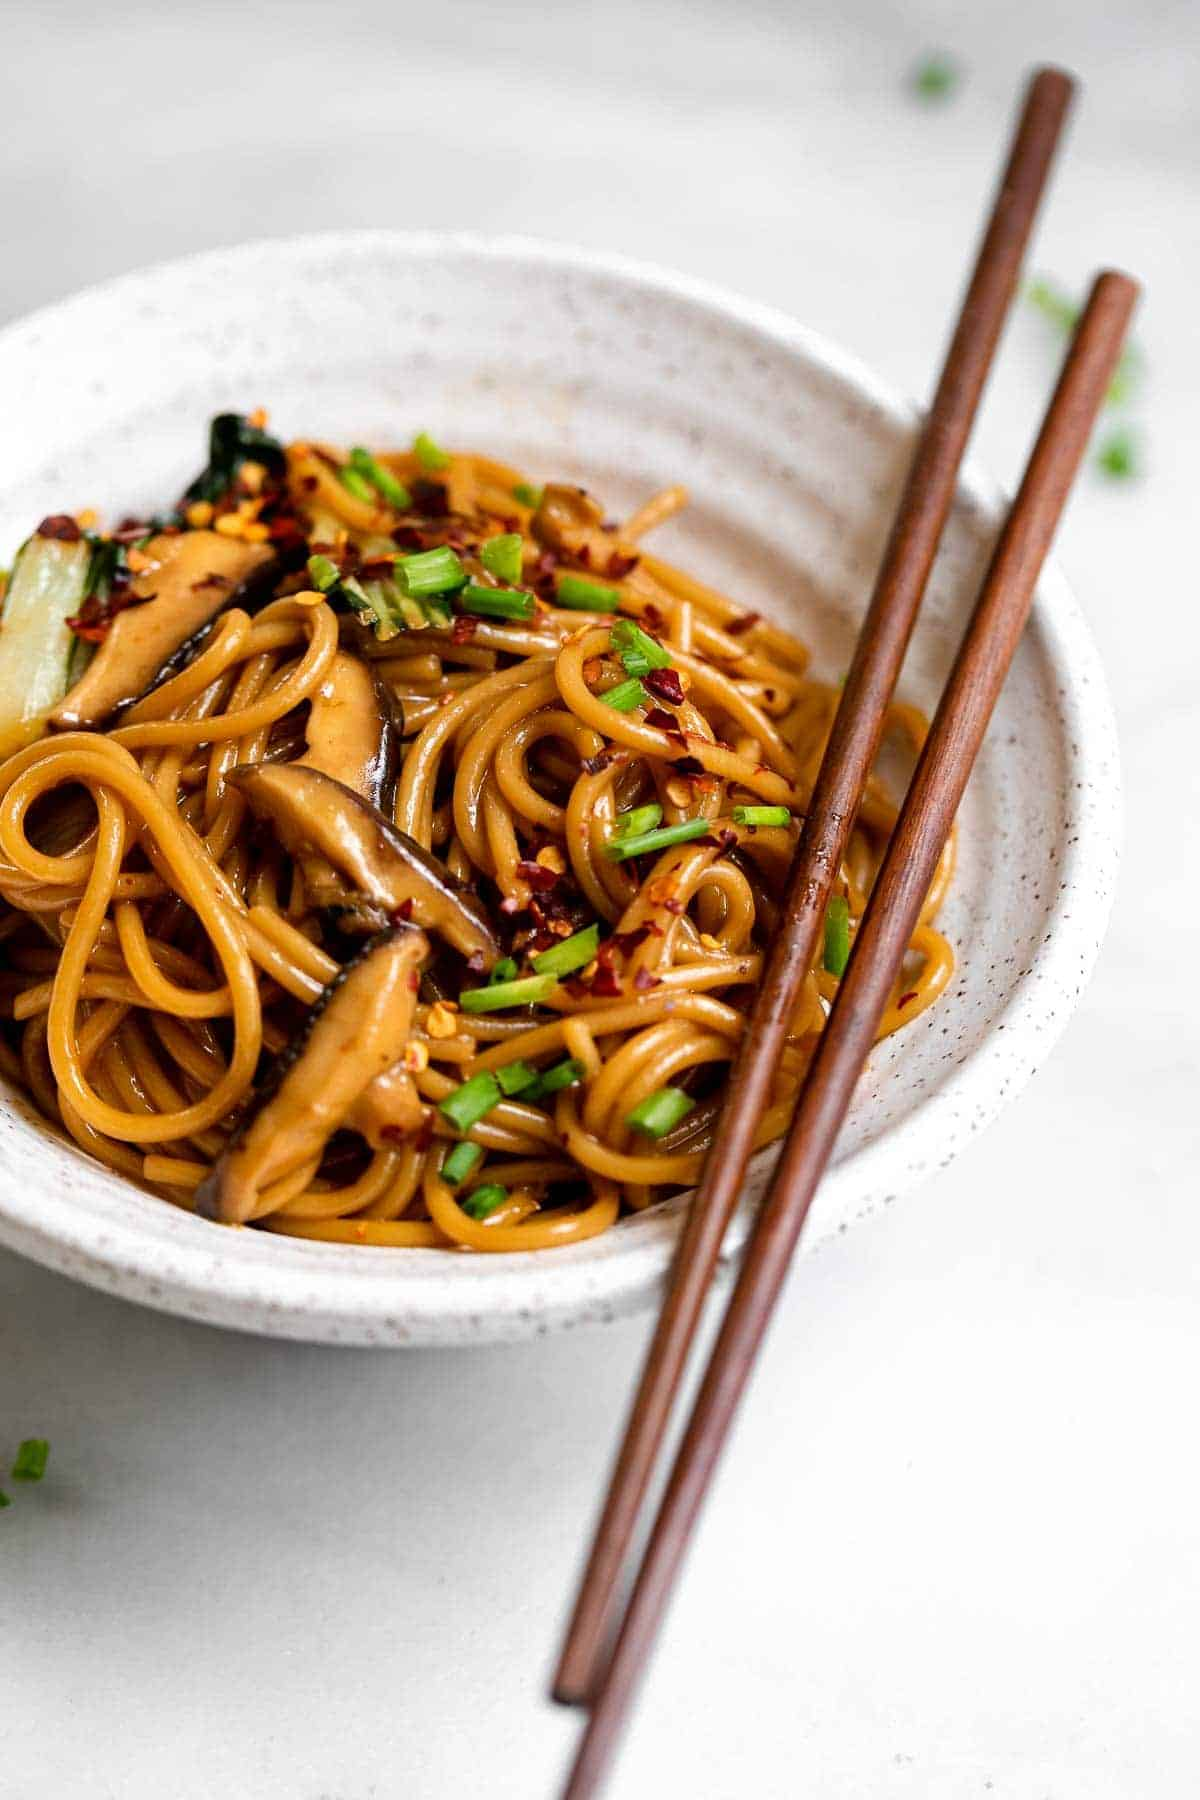 up close image of the noodles with chopsticks on the side